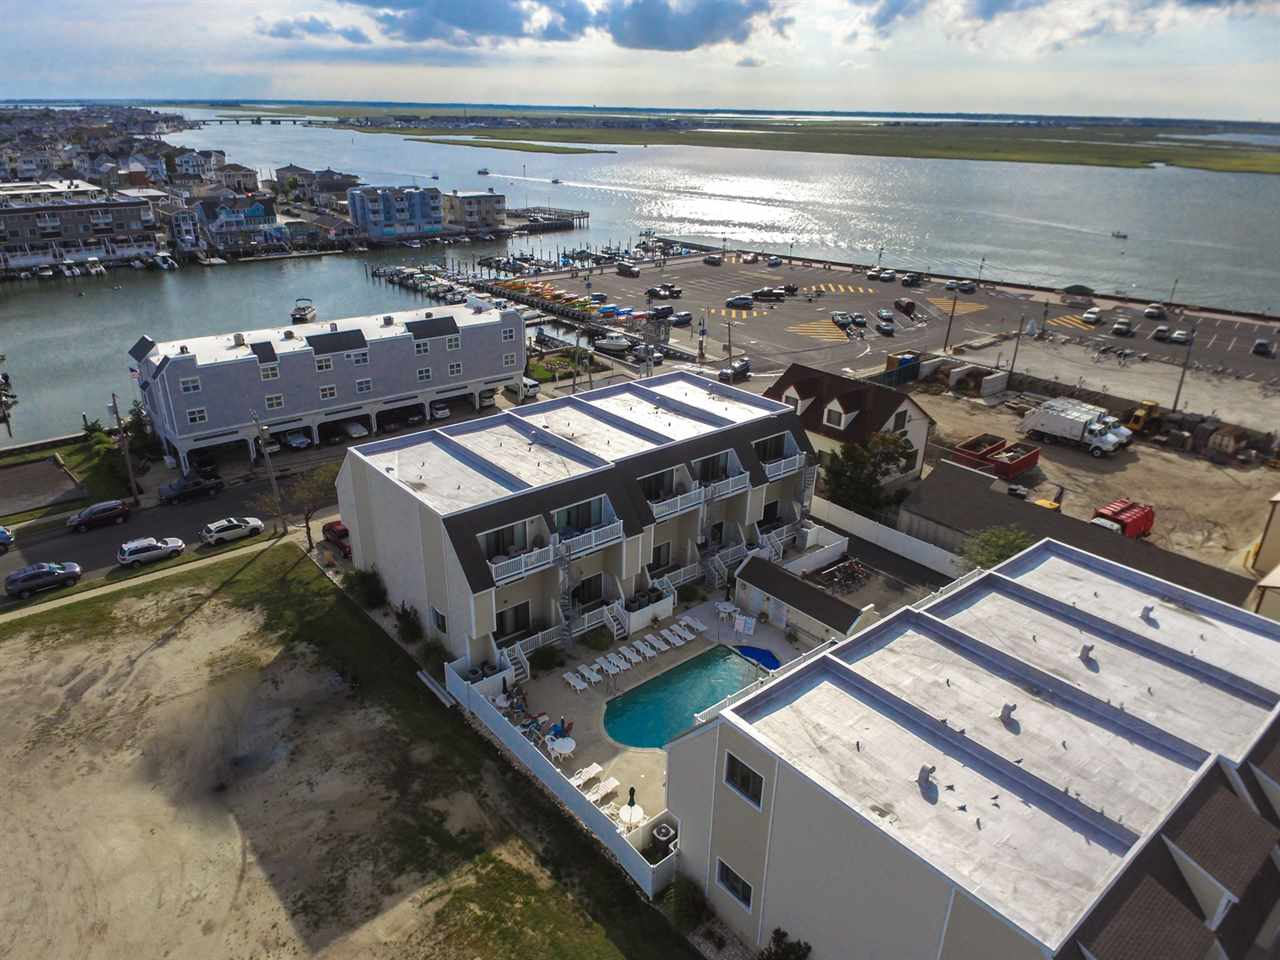 328, Unit 7 81st, Stone Harbor